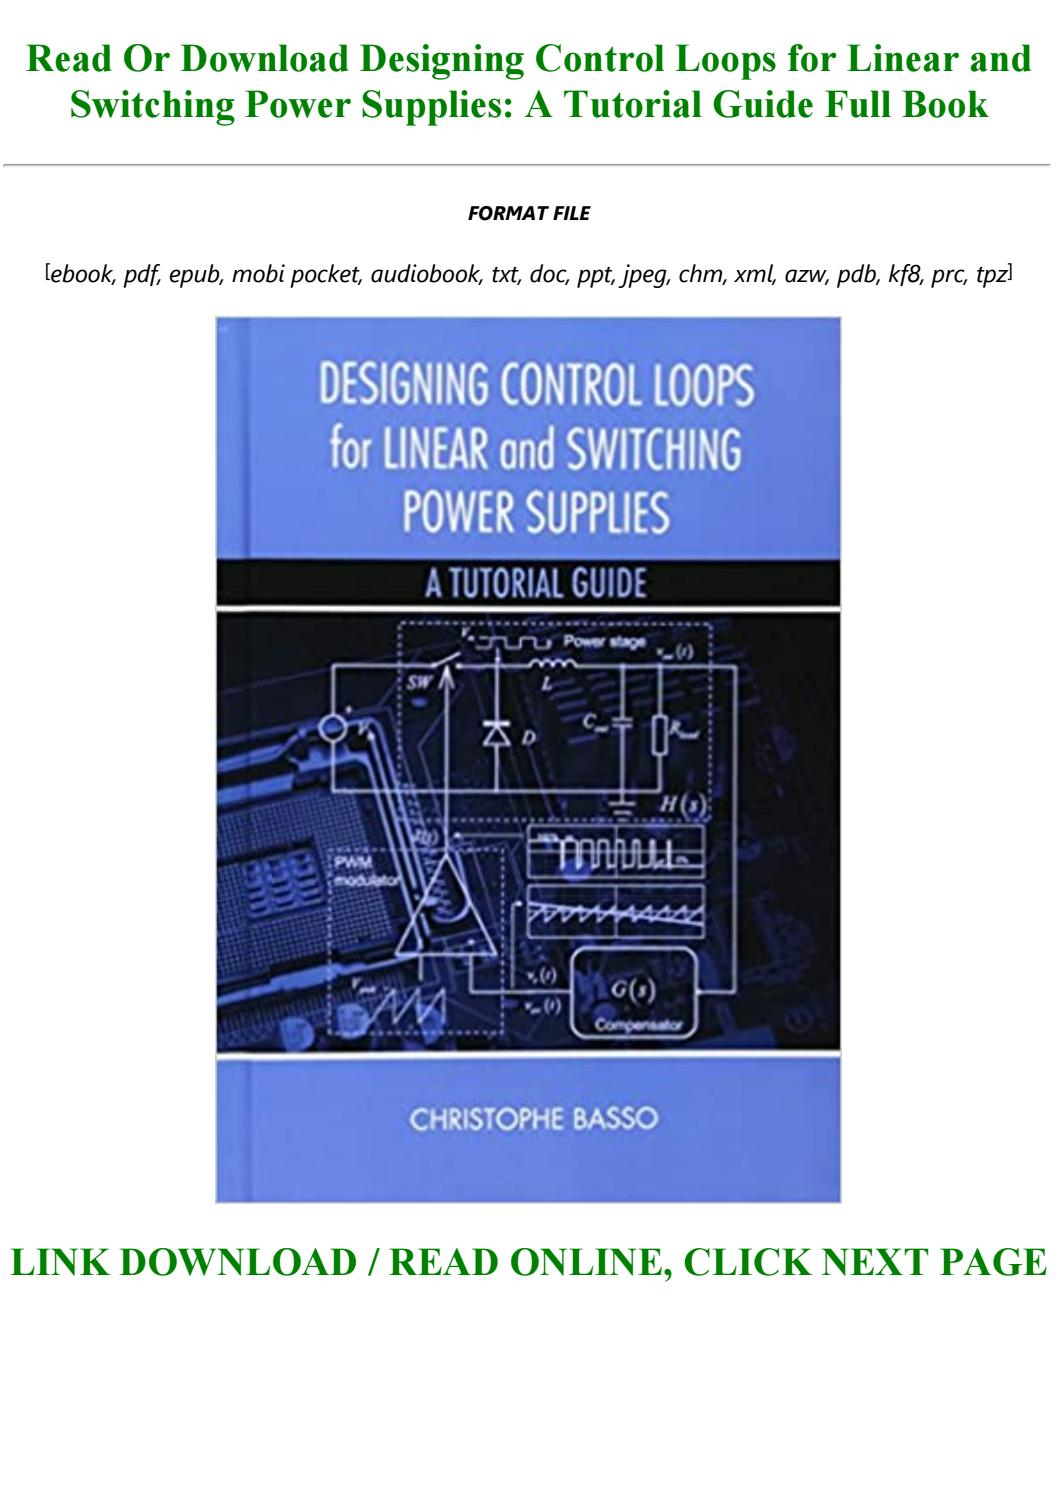 Ebook P D F Designing Control Loops For Linear And Switching Power Supplies A Tutorial Guide Fu By Xzavieroke213 Issuu